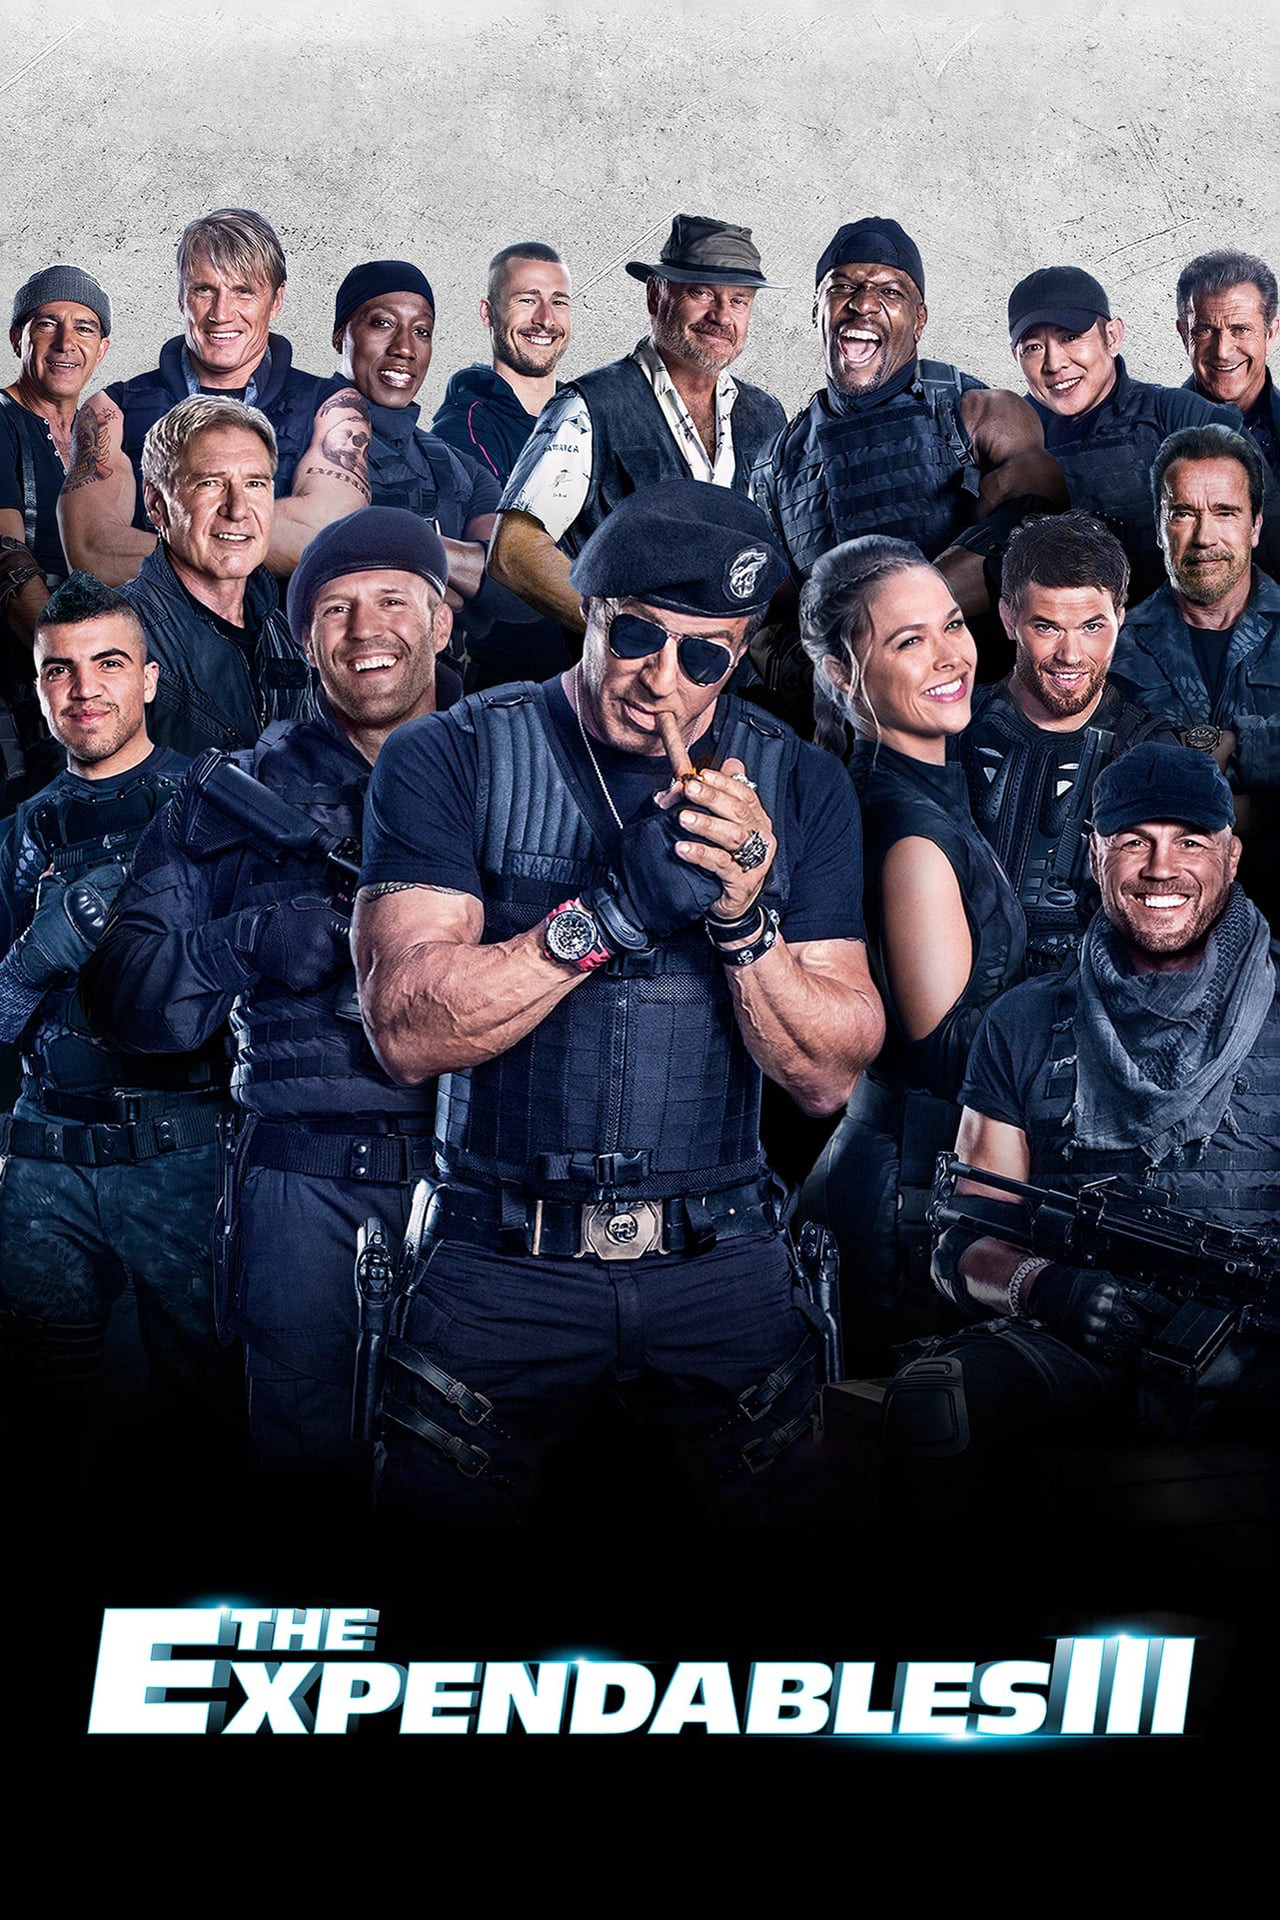 the expendables 3 full movie free